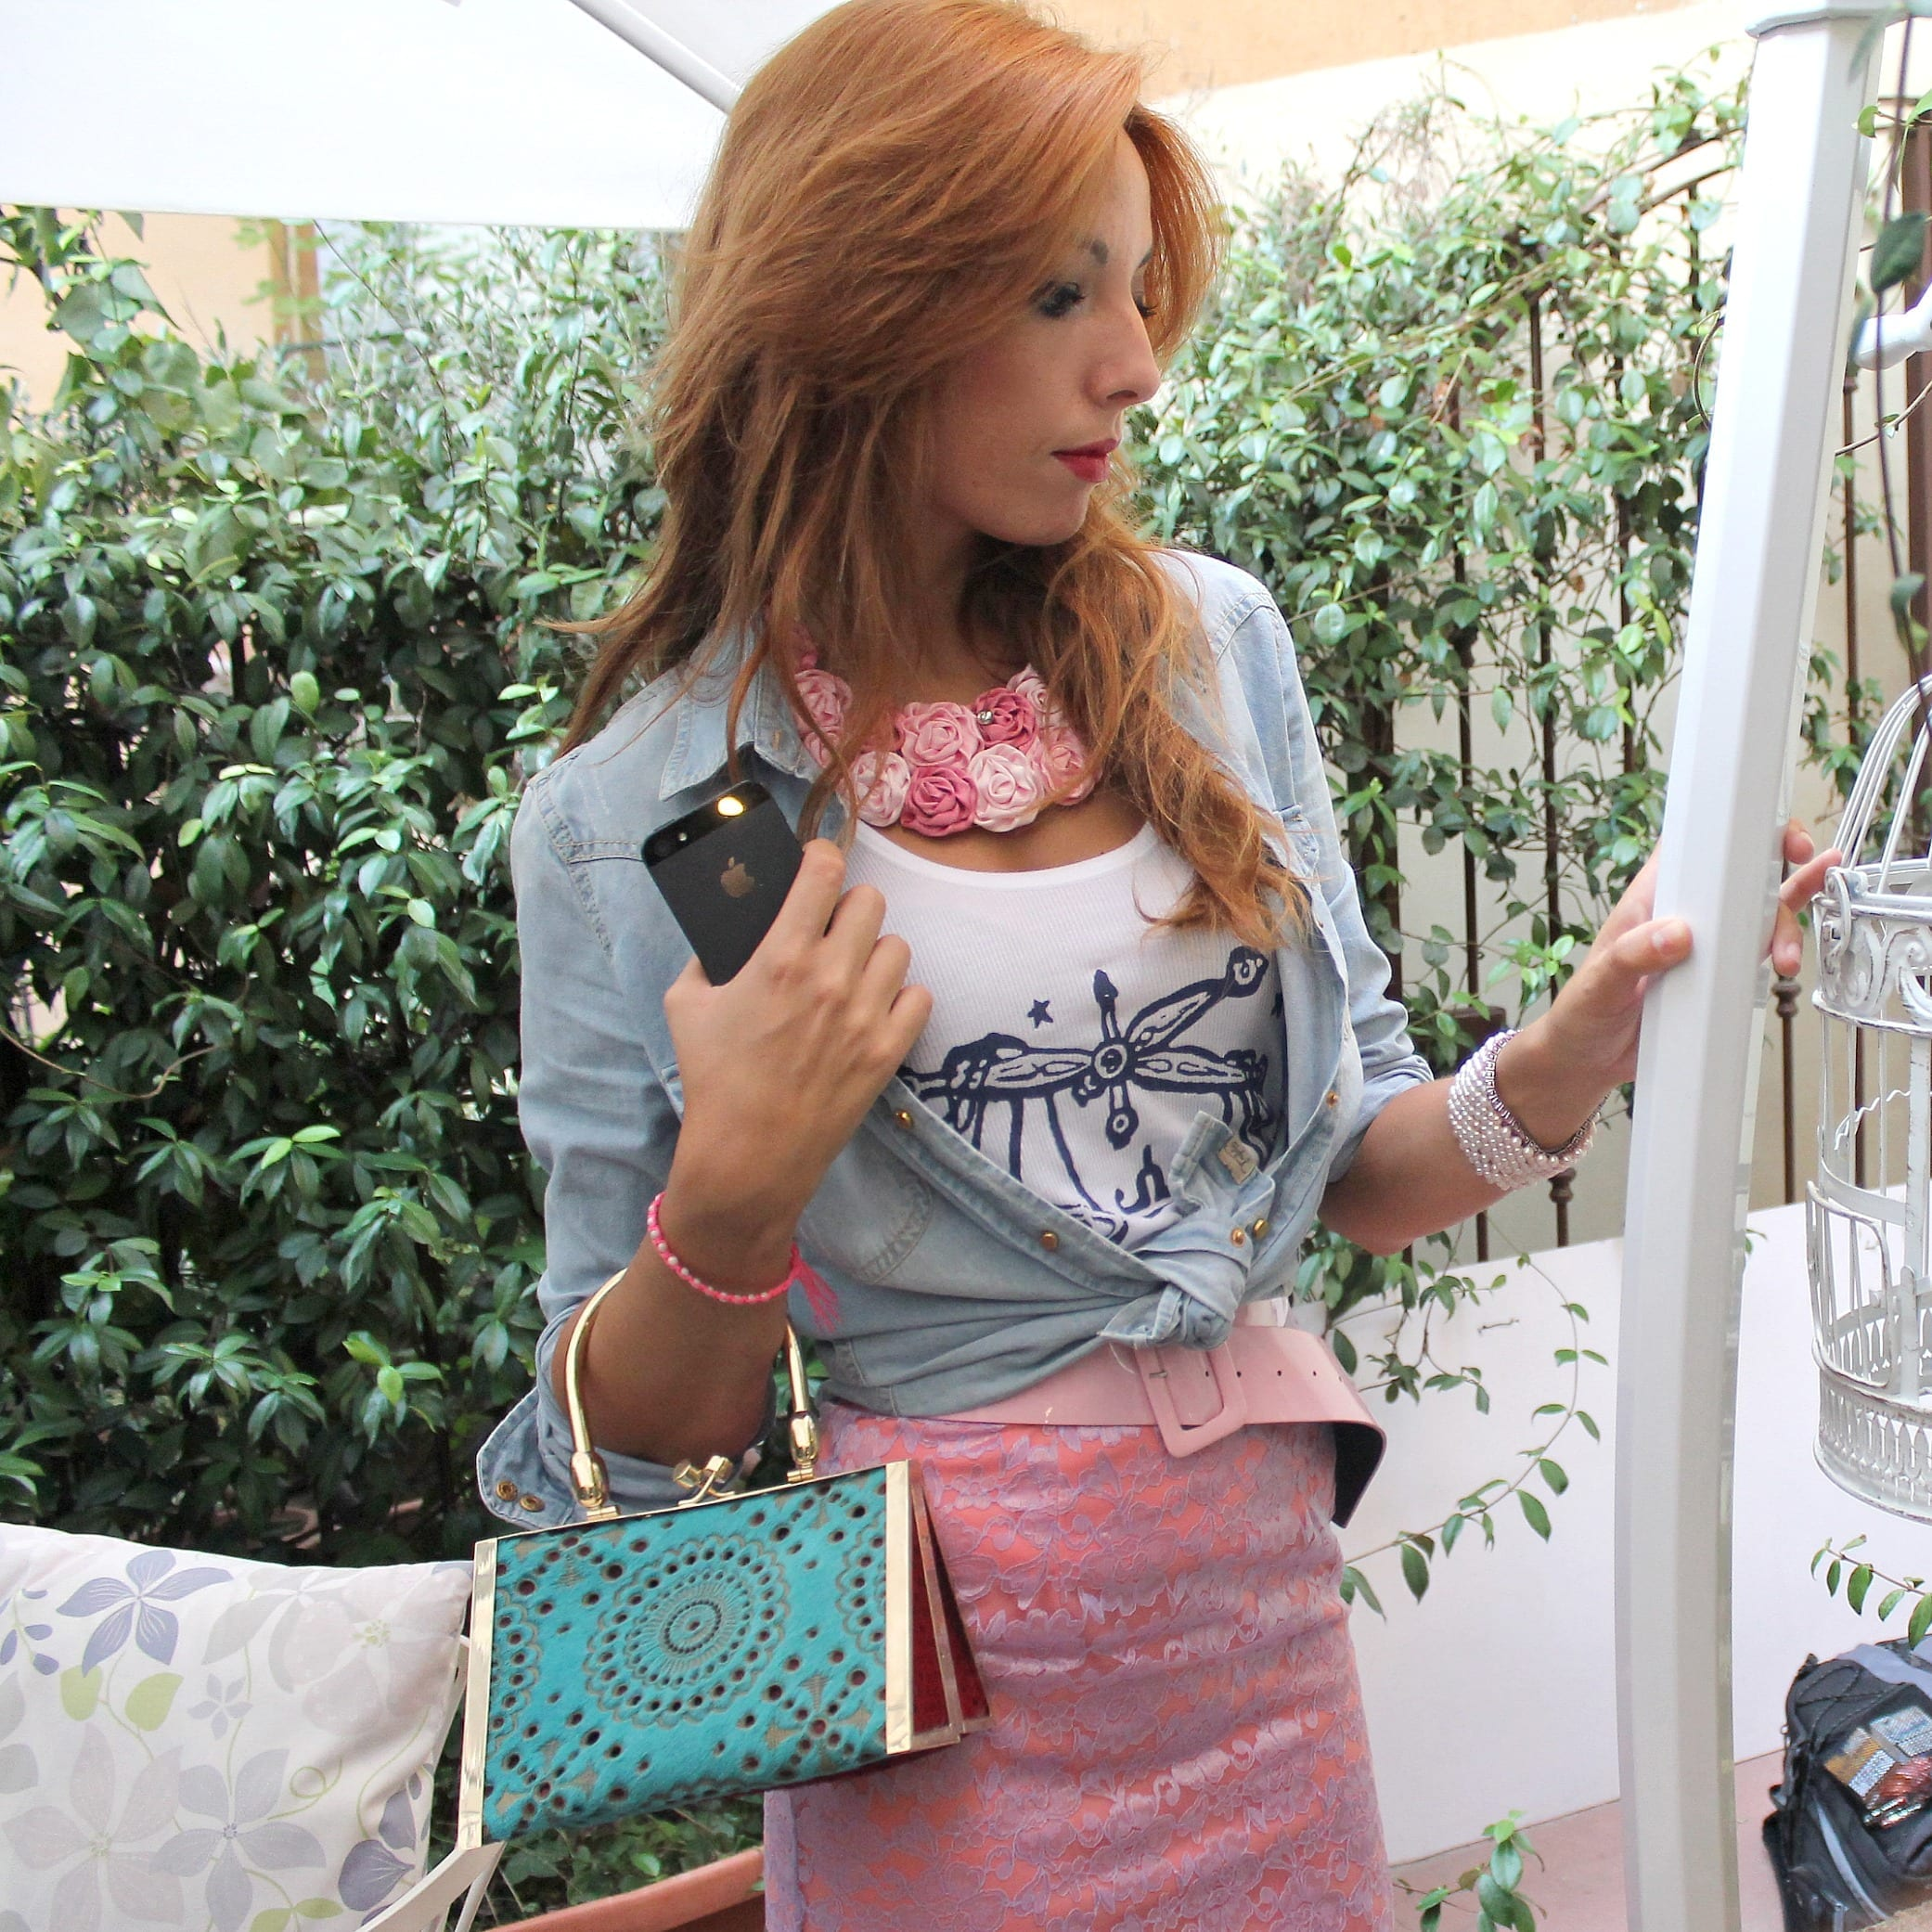 vitussi bag. made in italy, fashion news, fashion trends, mfw, theladycracy, elisa bellino, pink skirt, pink lace skirt, luxury bag, fashion bloggers milano, fashion blog